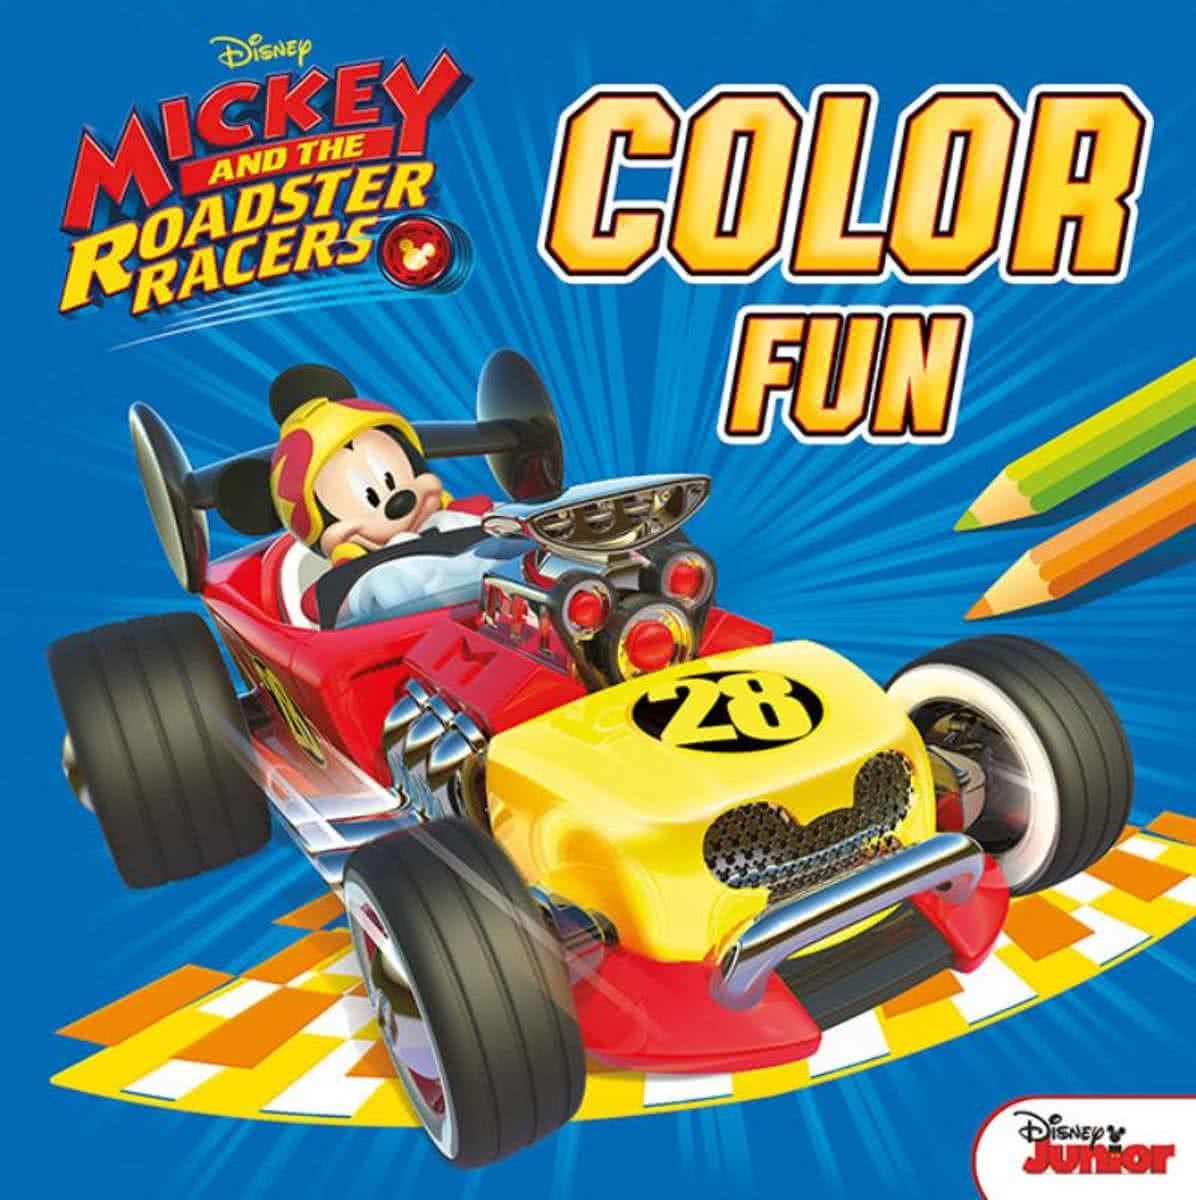 color fun Mickey and the roadster racers